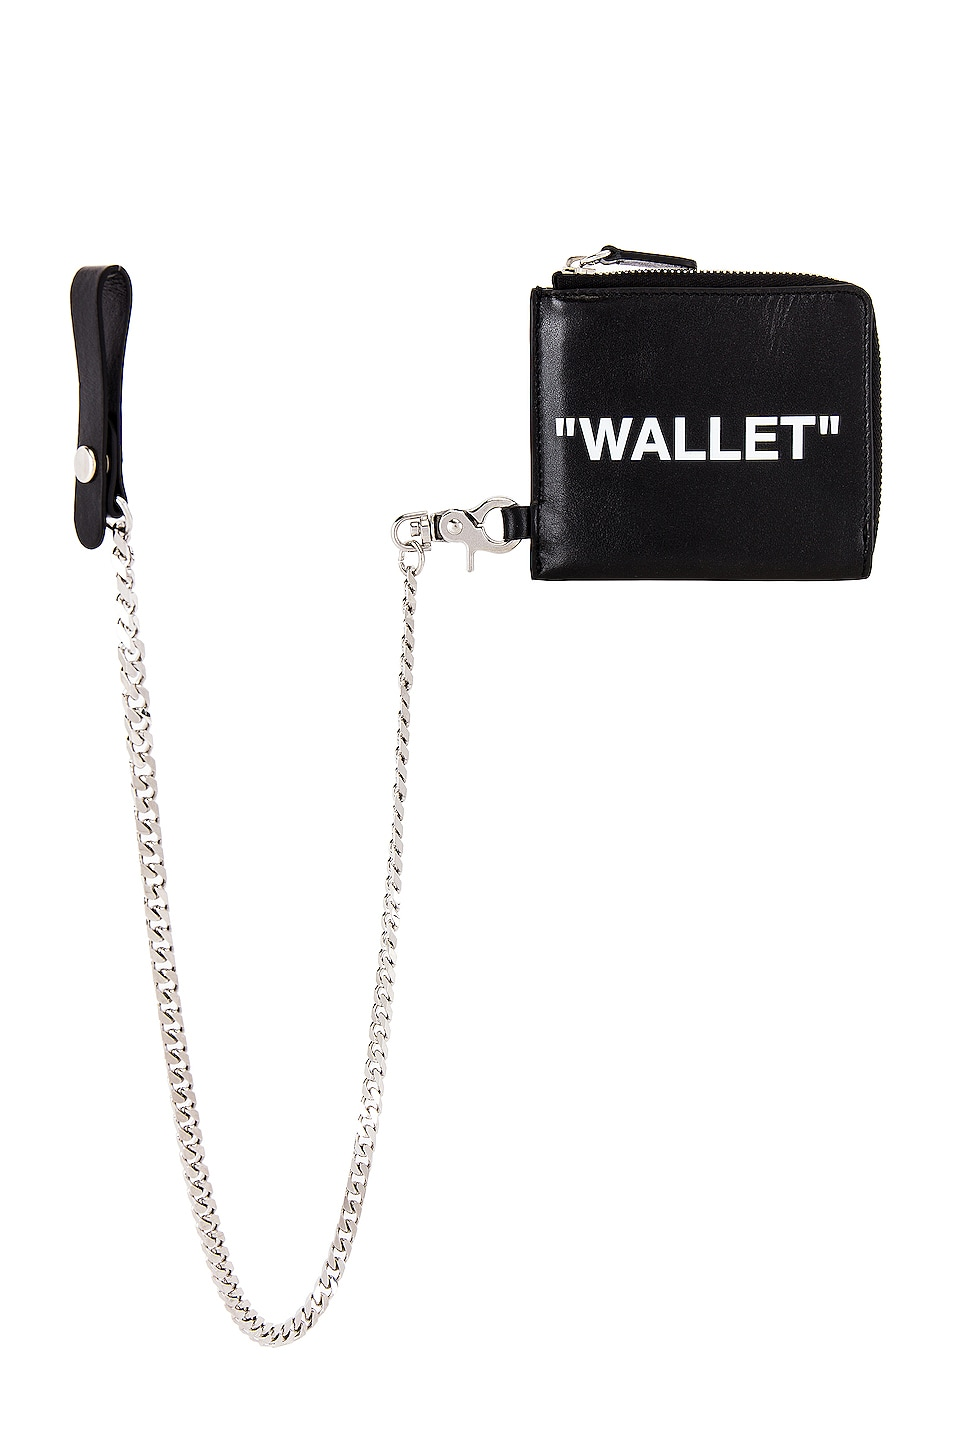 OFF-WHITE Quote Chain Wallet in Black